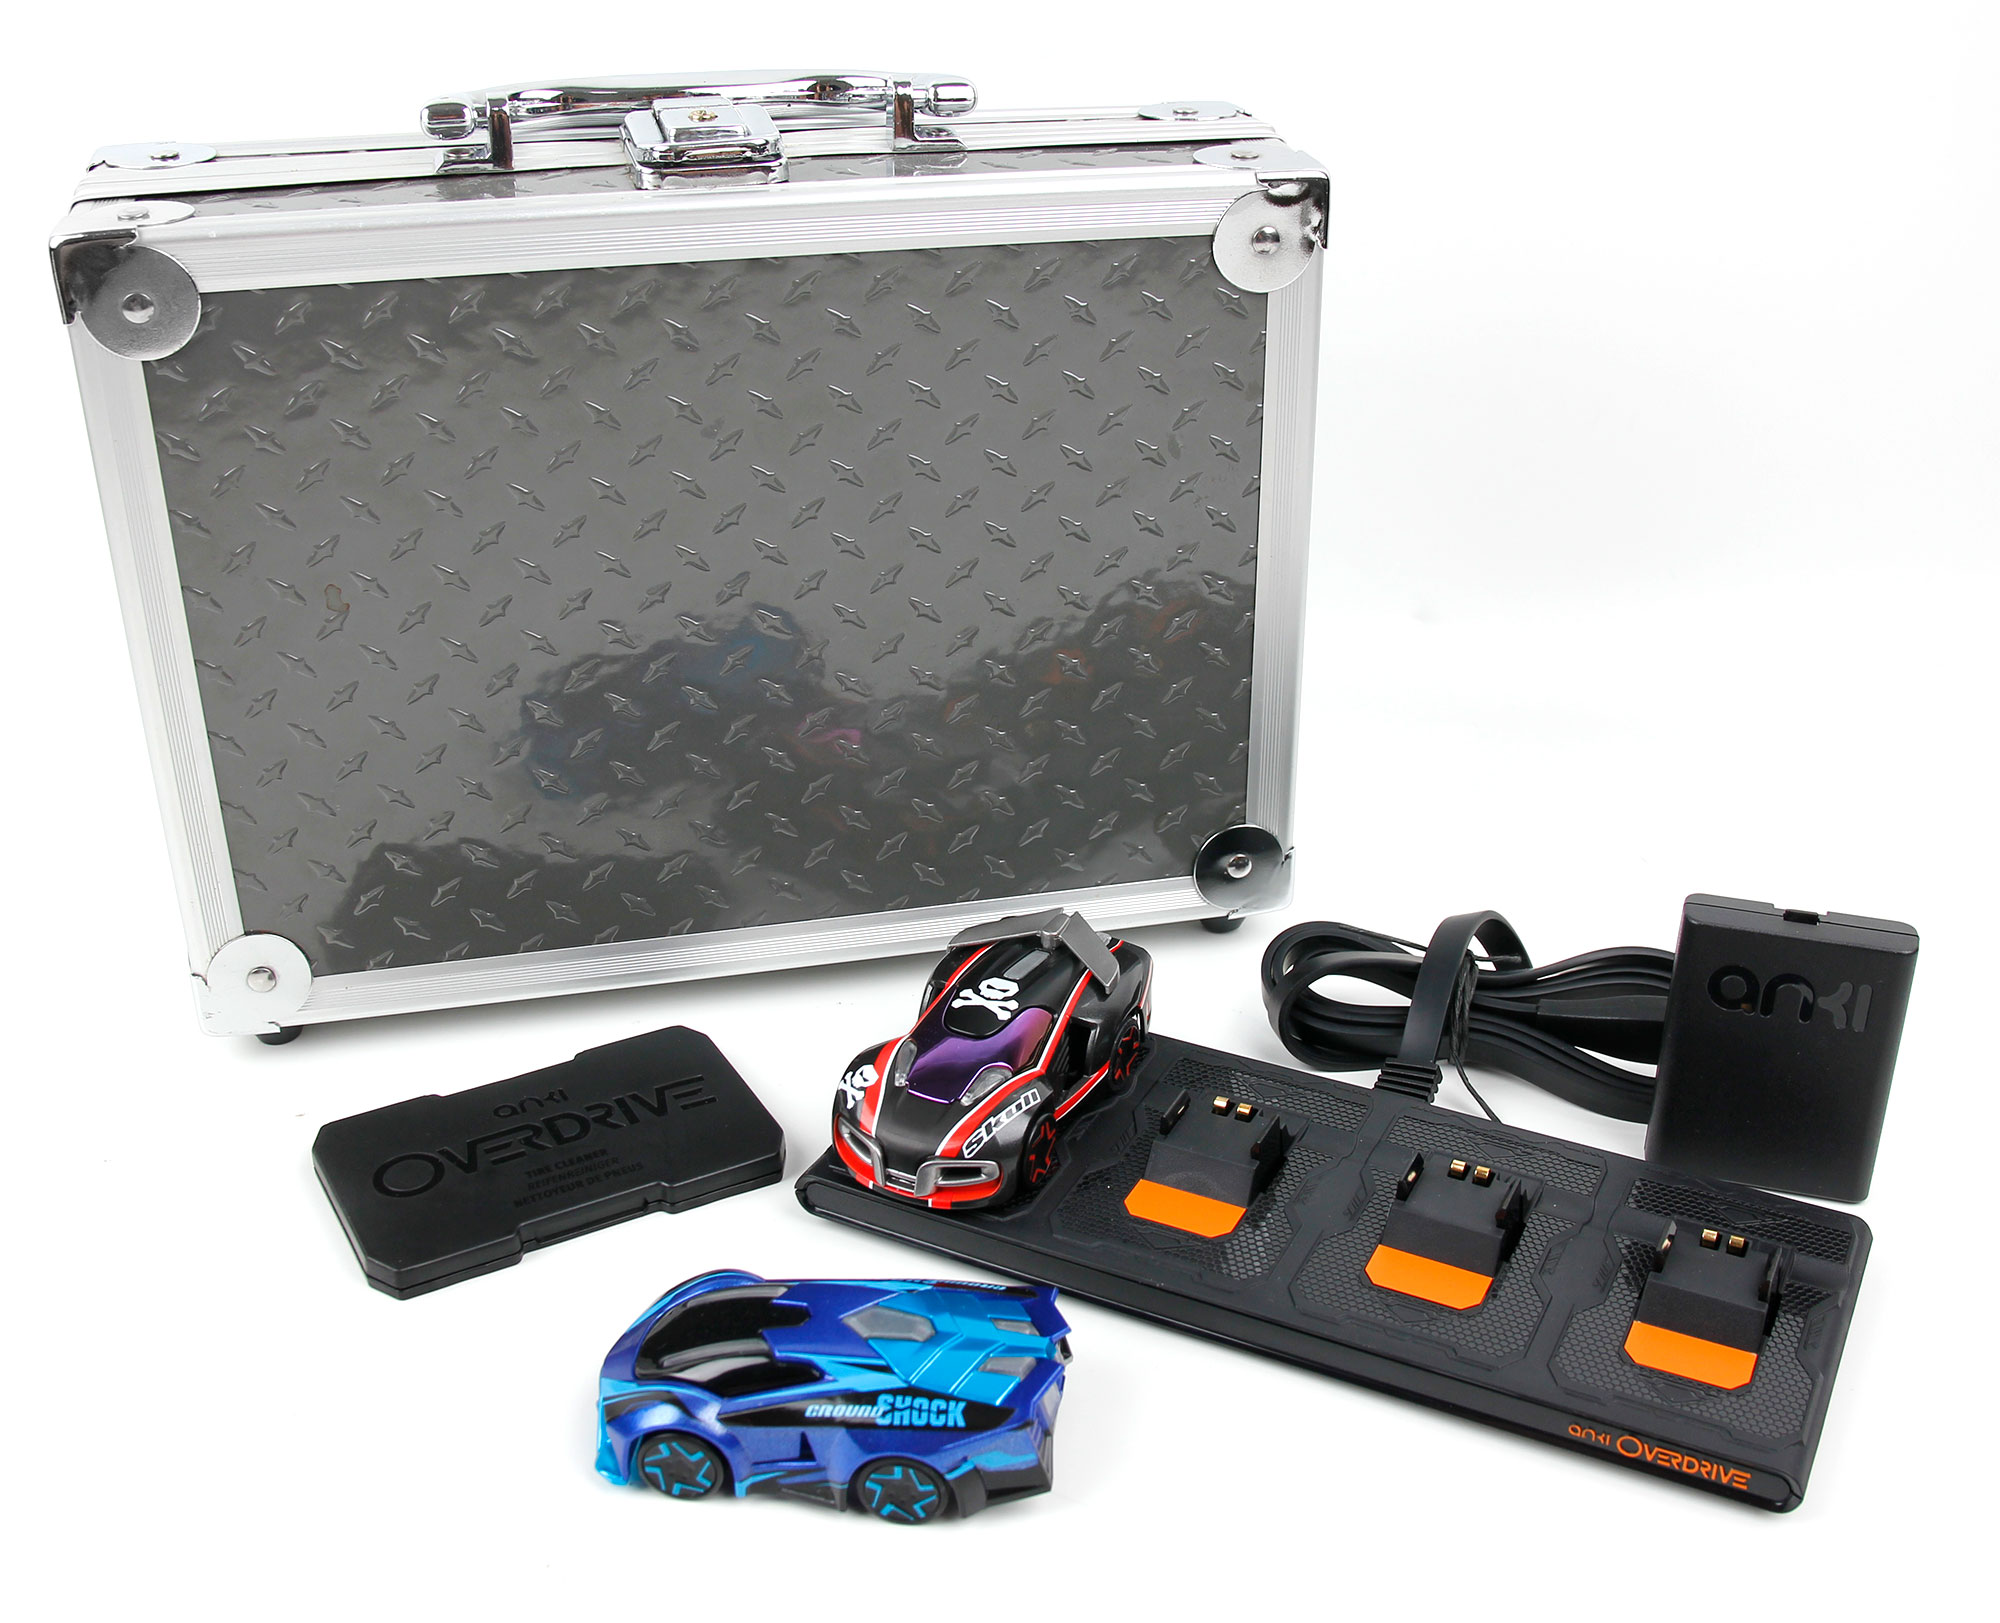 Compatible with The Anki Overdrive Cars /& Expansion Car Toys DURAGADGET Aluminium EVA Case with Customizable D.I.Y Foam Interior